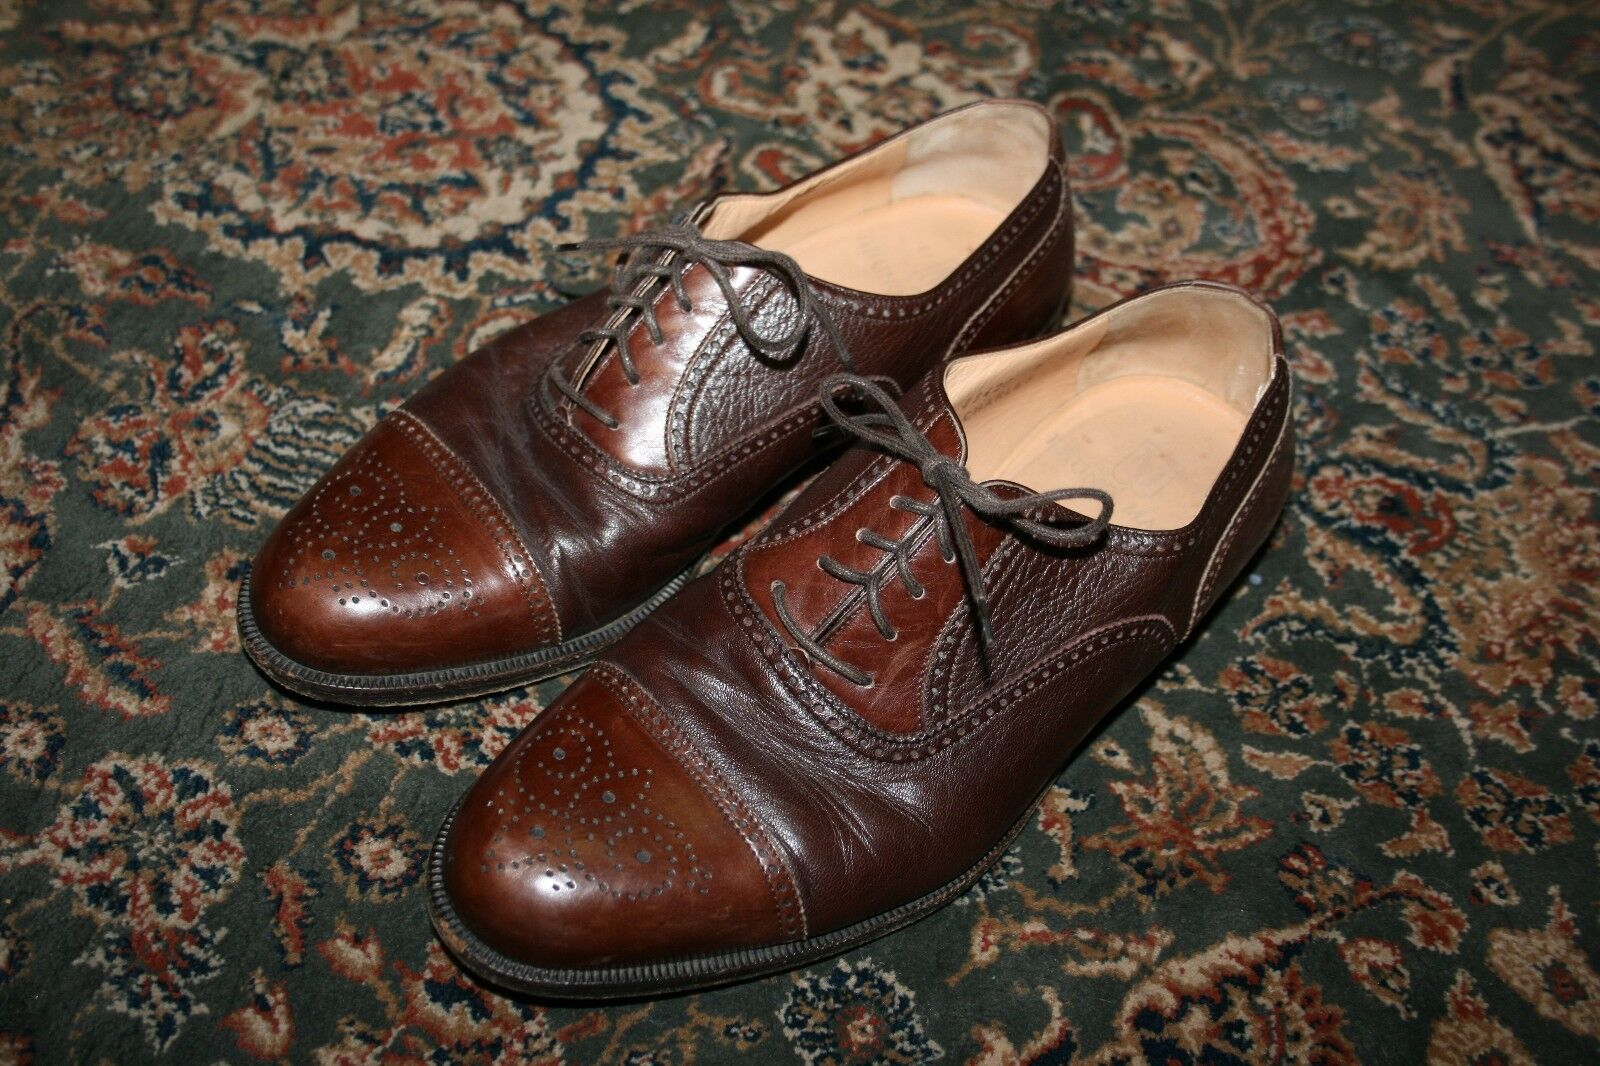 BRUNO MAGLI Charles Brown Calfskin Leather Brogue Cap Toe Dress shoes 8 M